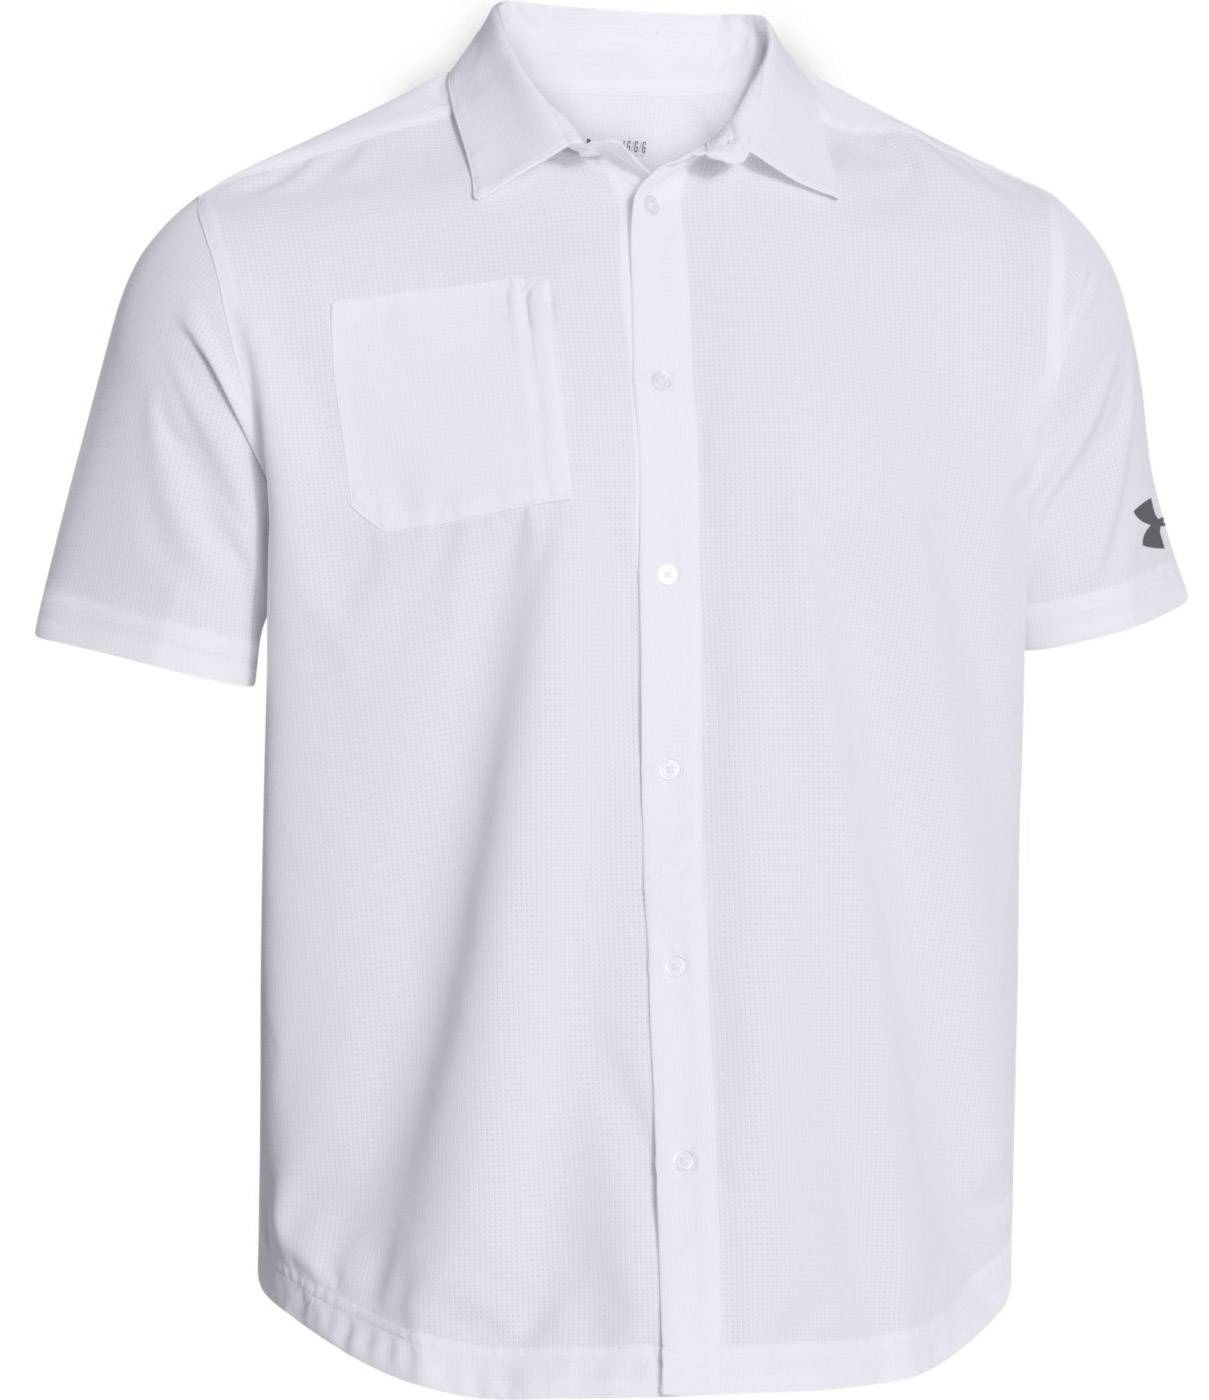 9c1766f9c6 Under Armour Ultimate Custom Corporate Men s Button Down Short Sleeve Shirt.  Size Chart Size Chart. Selected Color  Not Selected